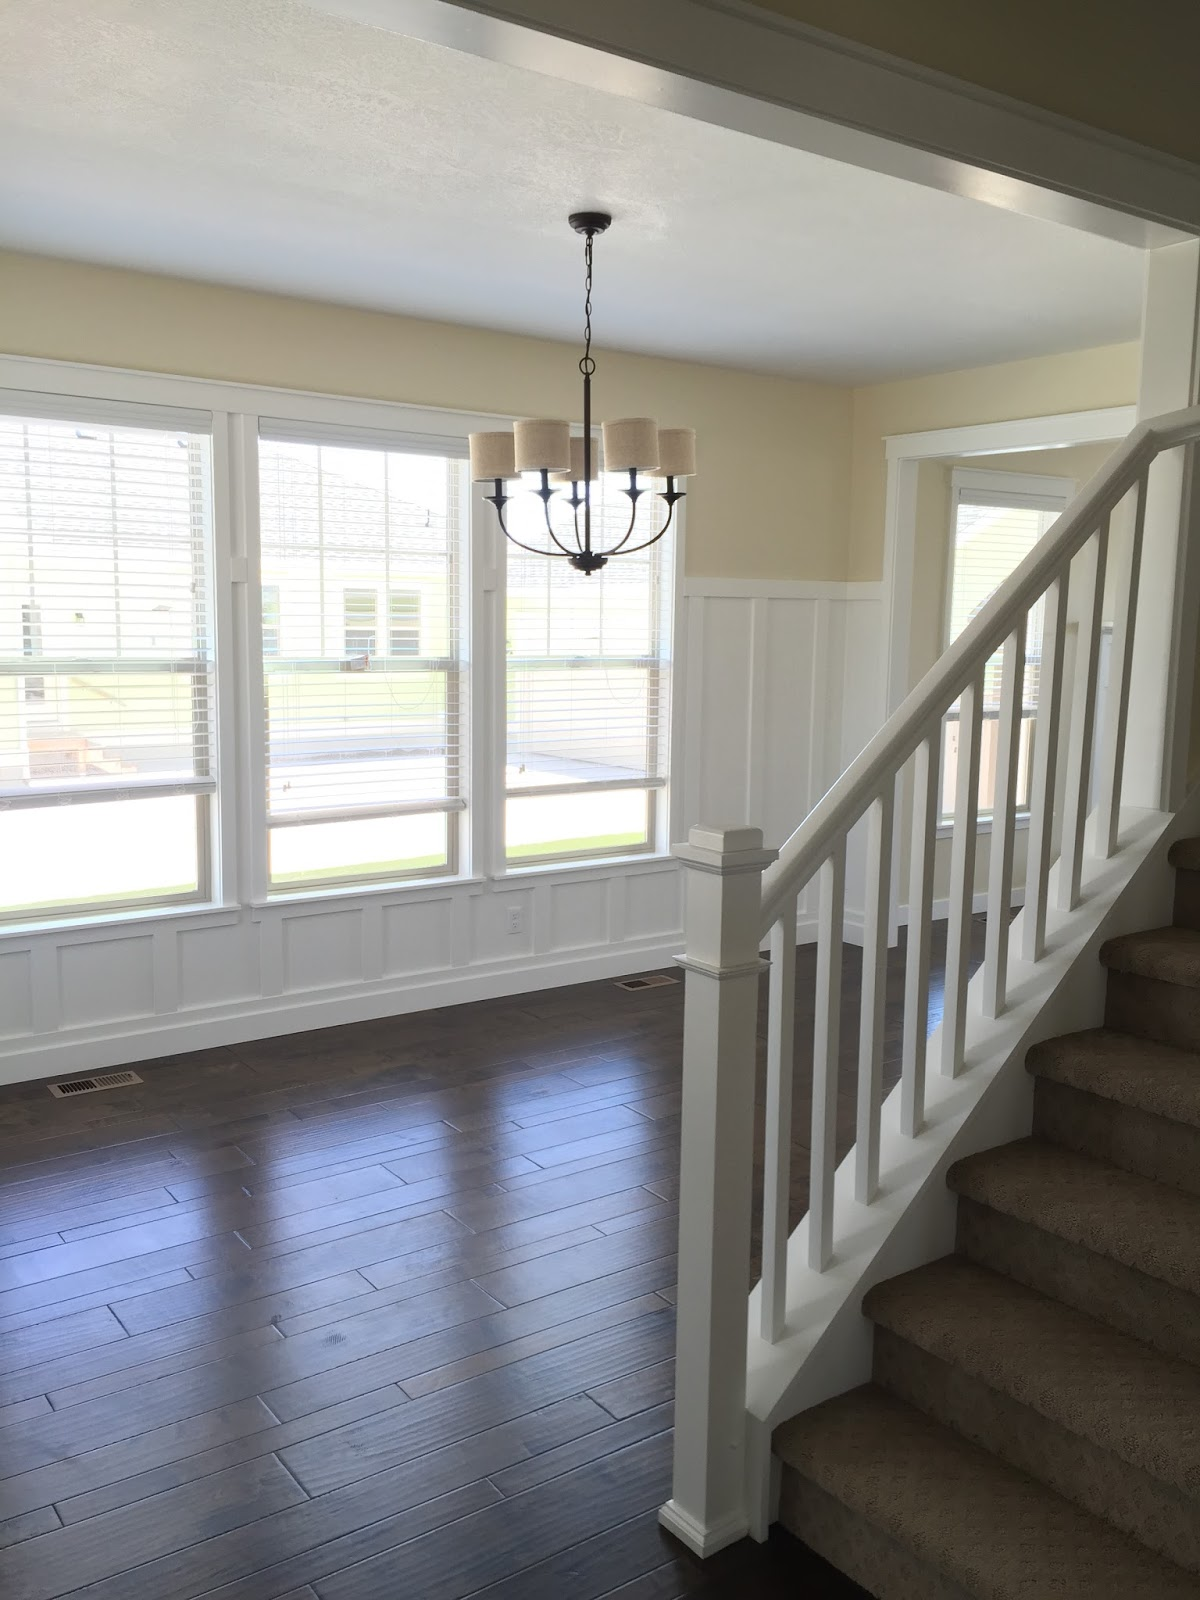 Top Design Must Haves When Building A Home